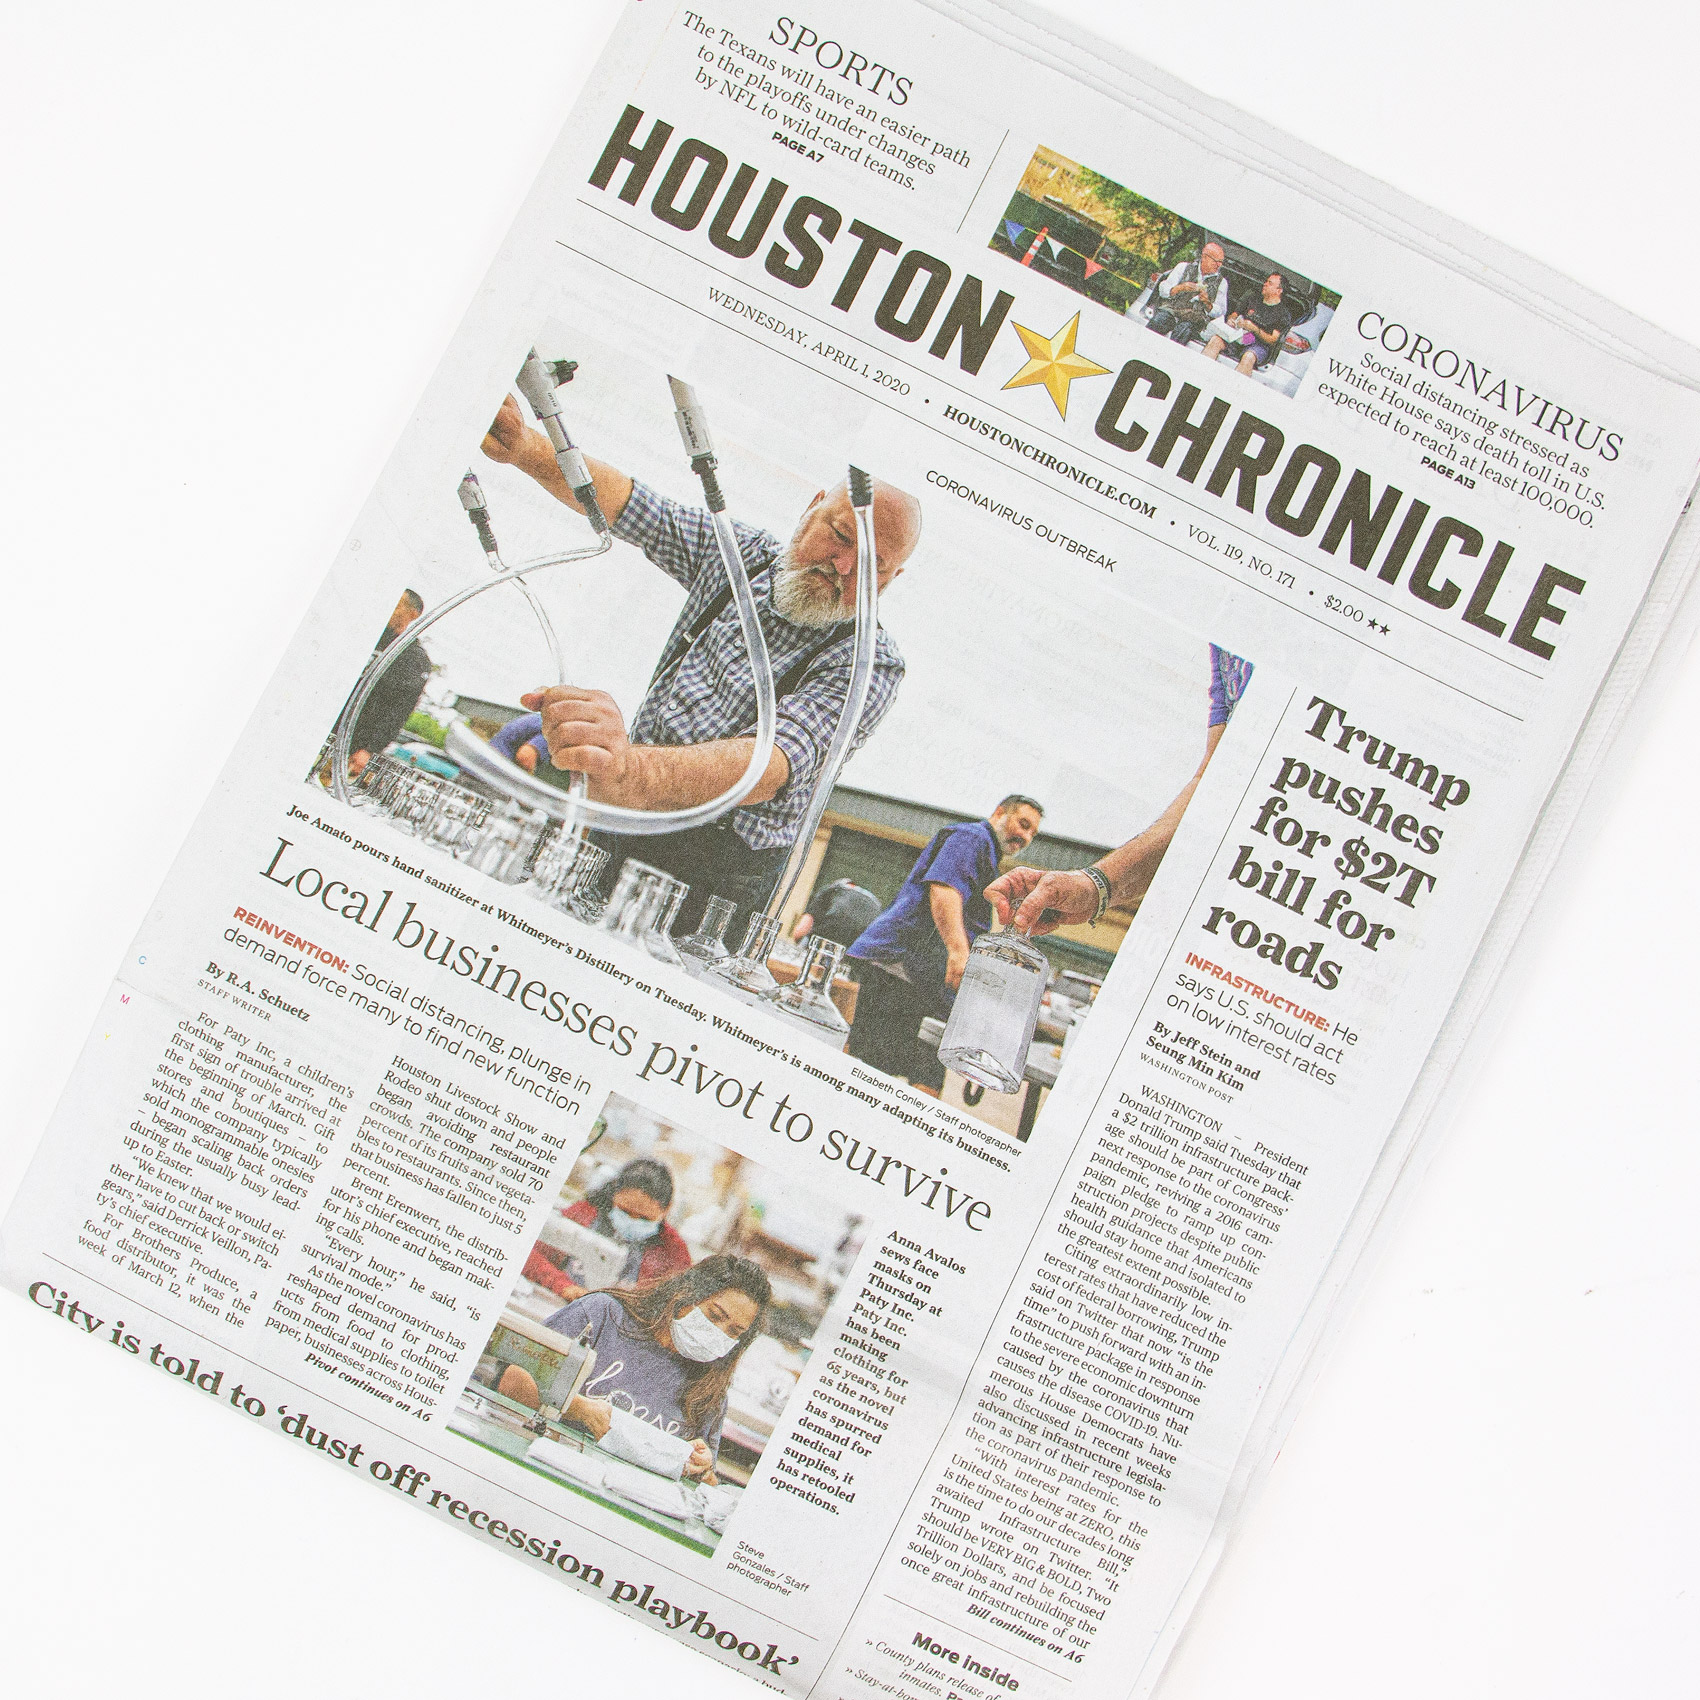 Paty on Houston Chronicle front page